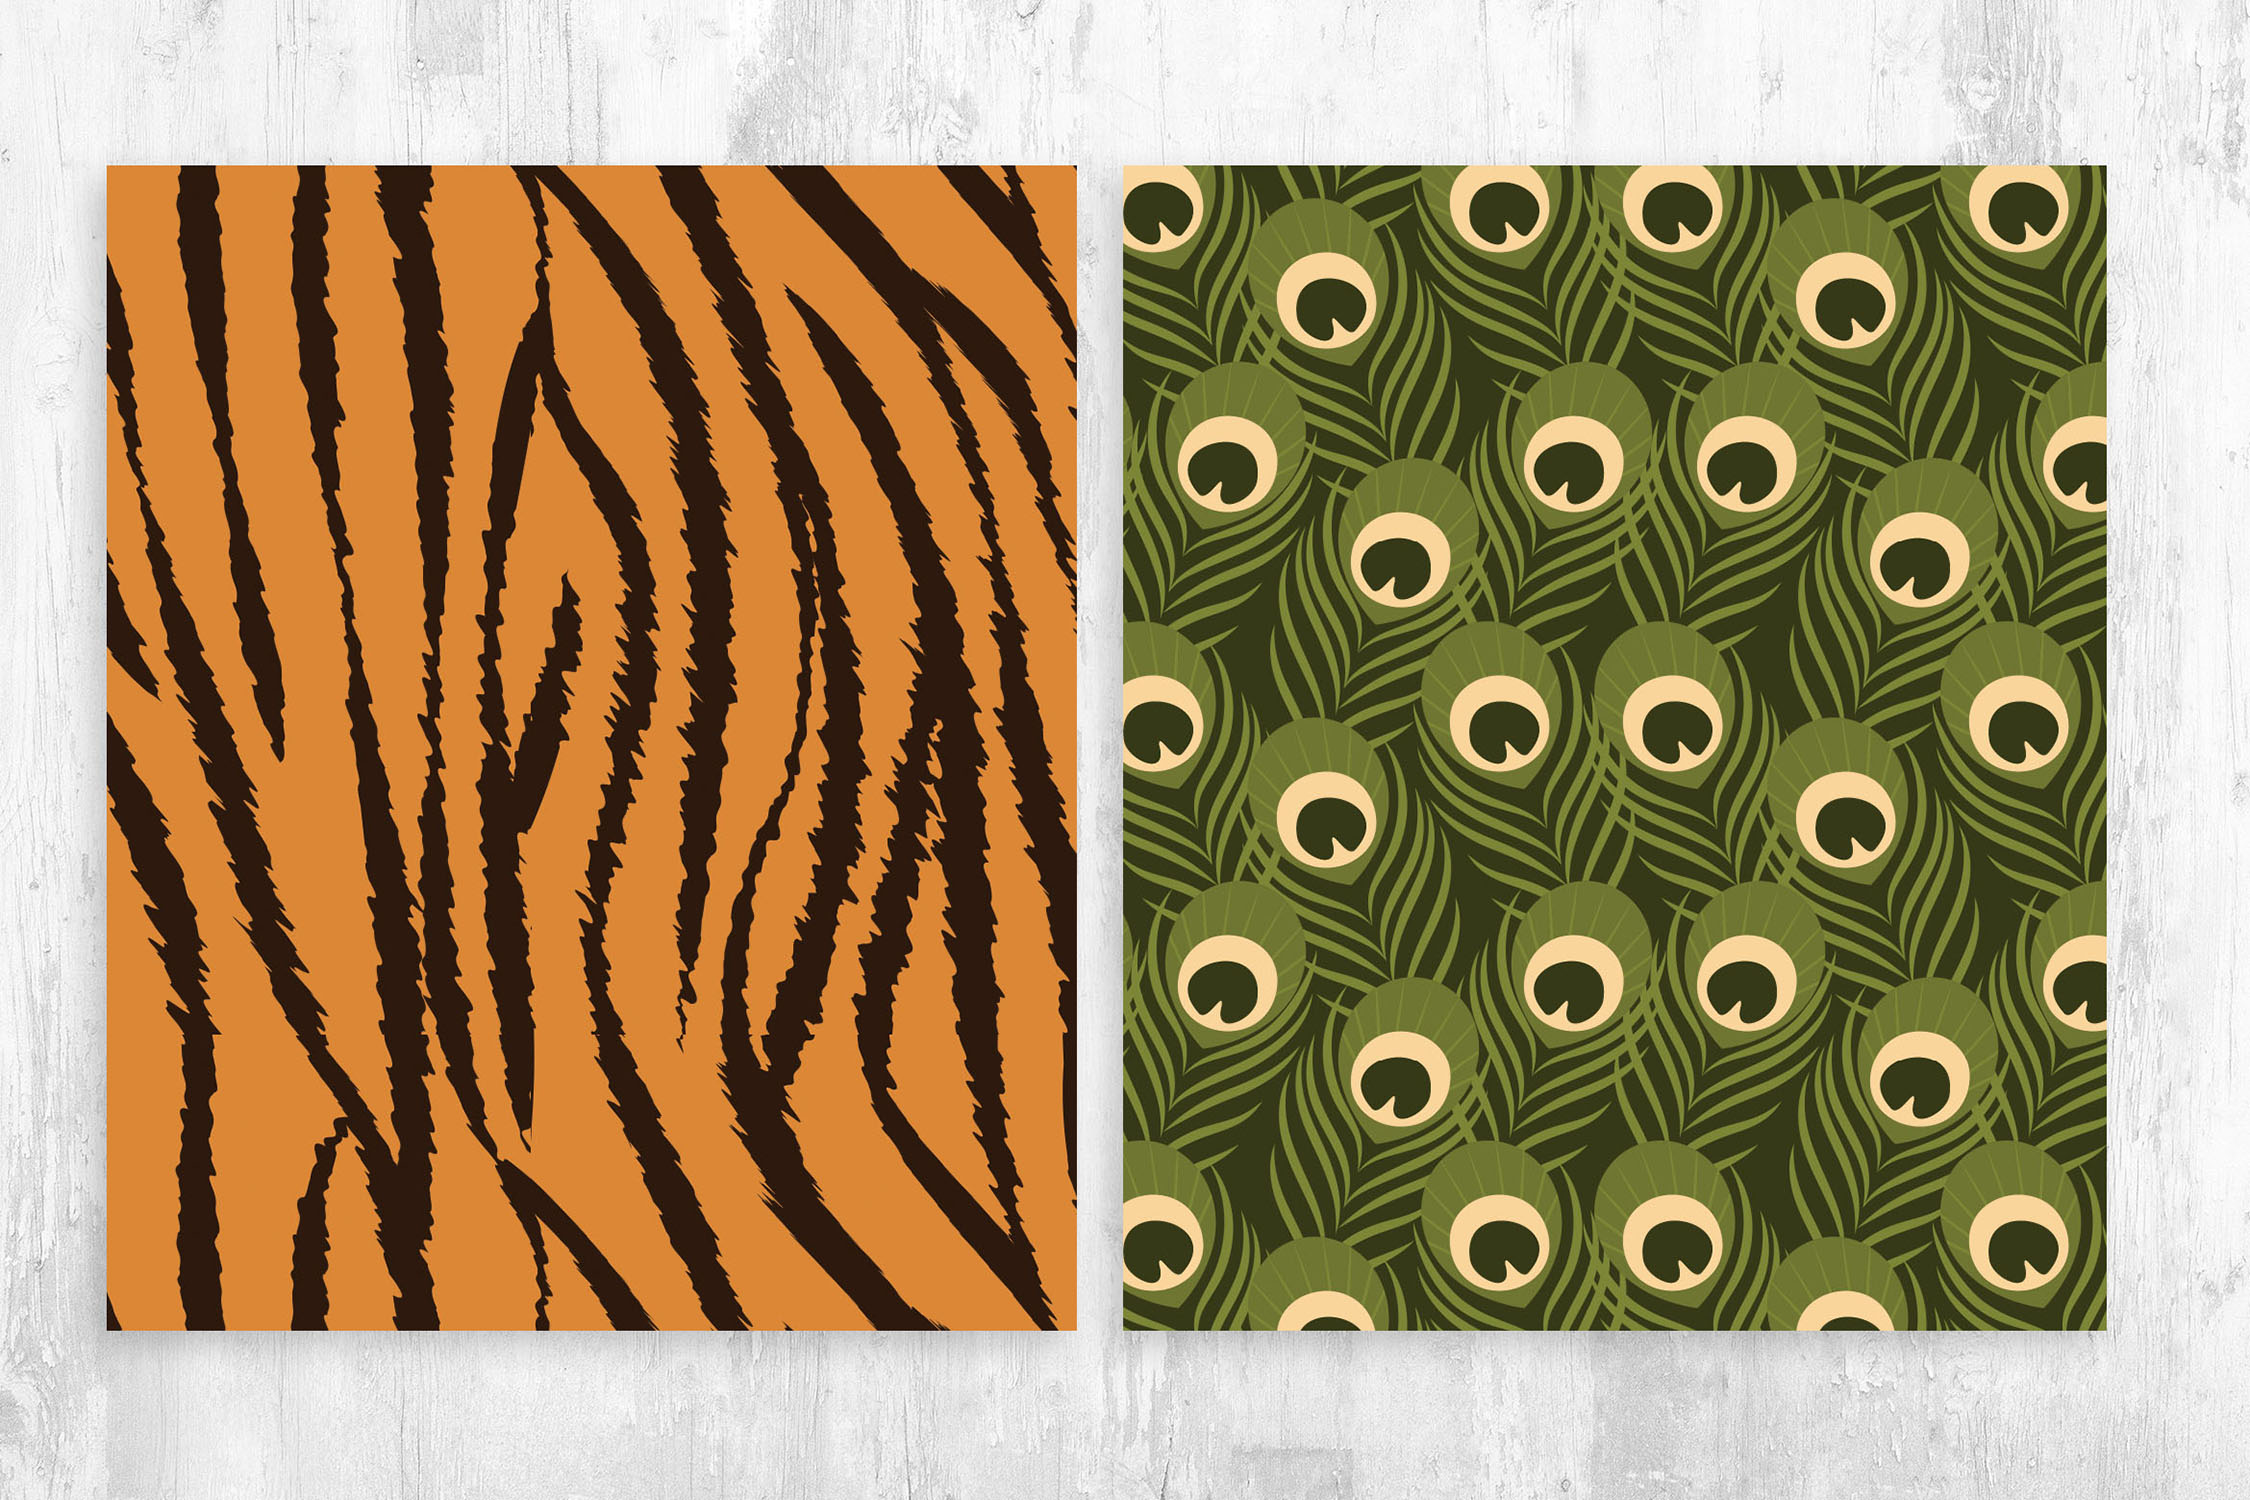 Tiger & Peacock Pattern for Photoshop & Illustrator